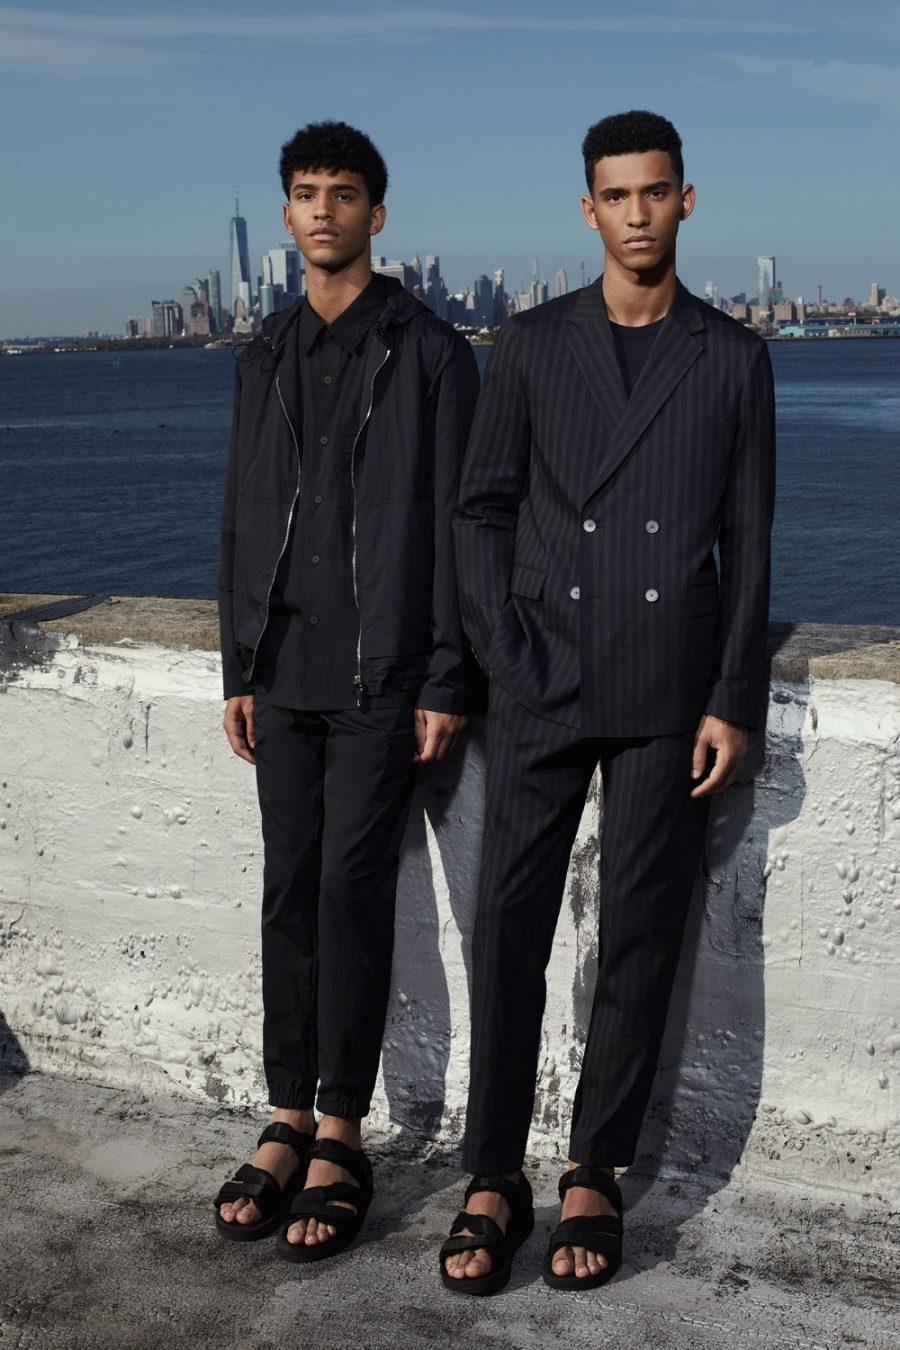 Theory delivers a polished spring-summer 2021 collection with clean lines and classic numbers like a pinstripe suit. Here, models Carlos and Hector Diaz inspire in Theory's menswear.